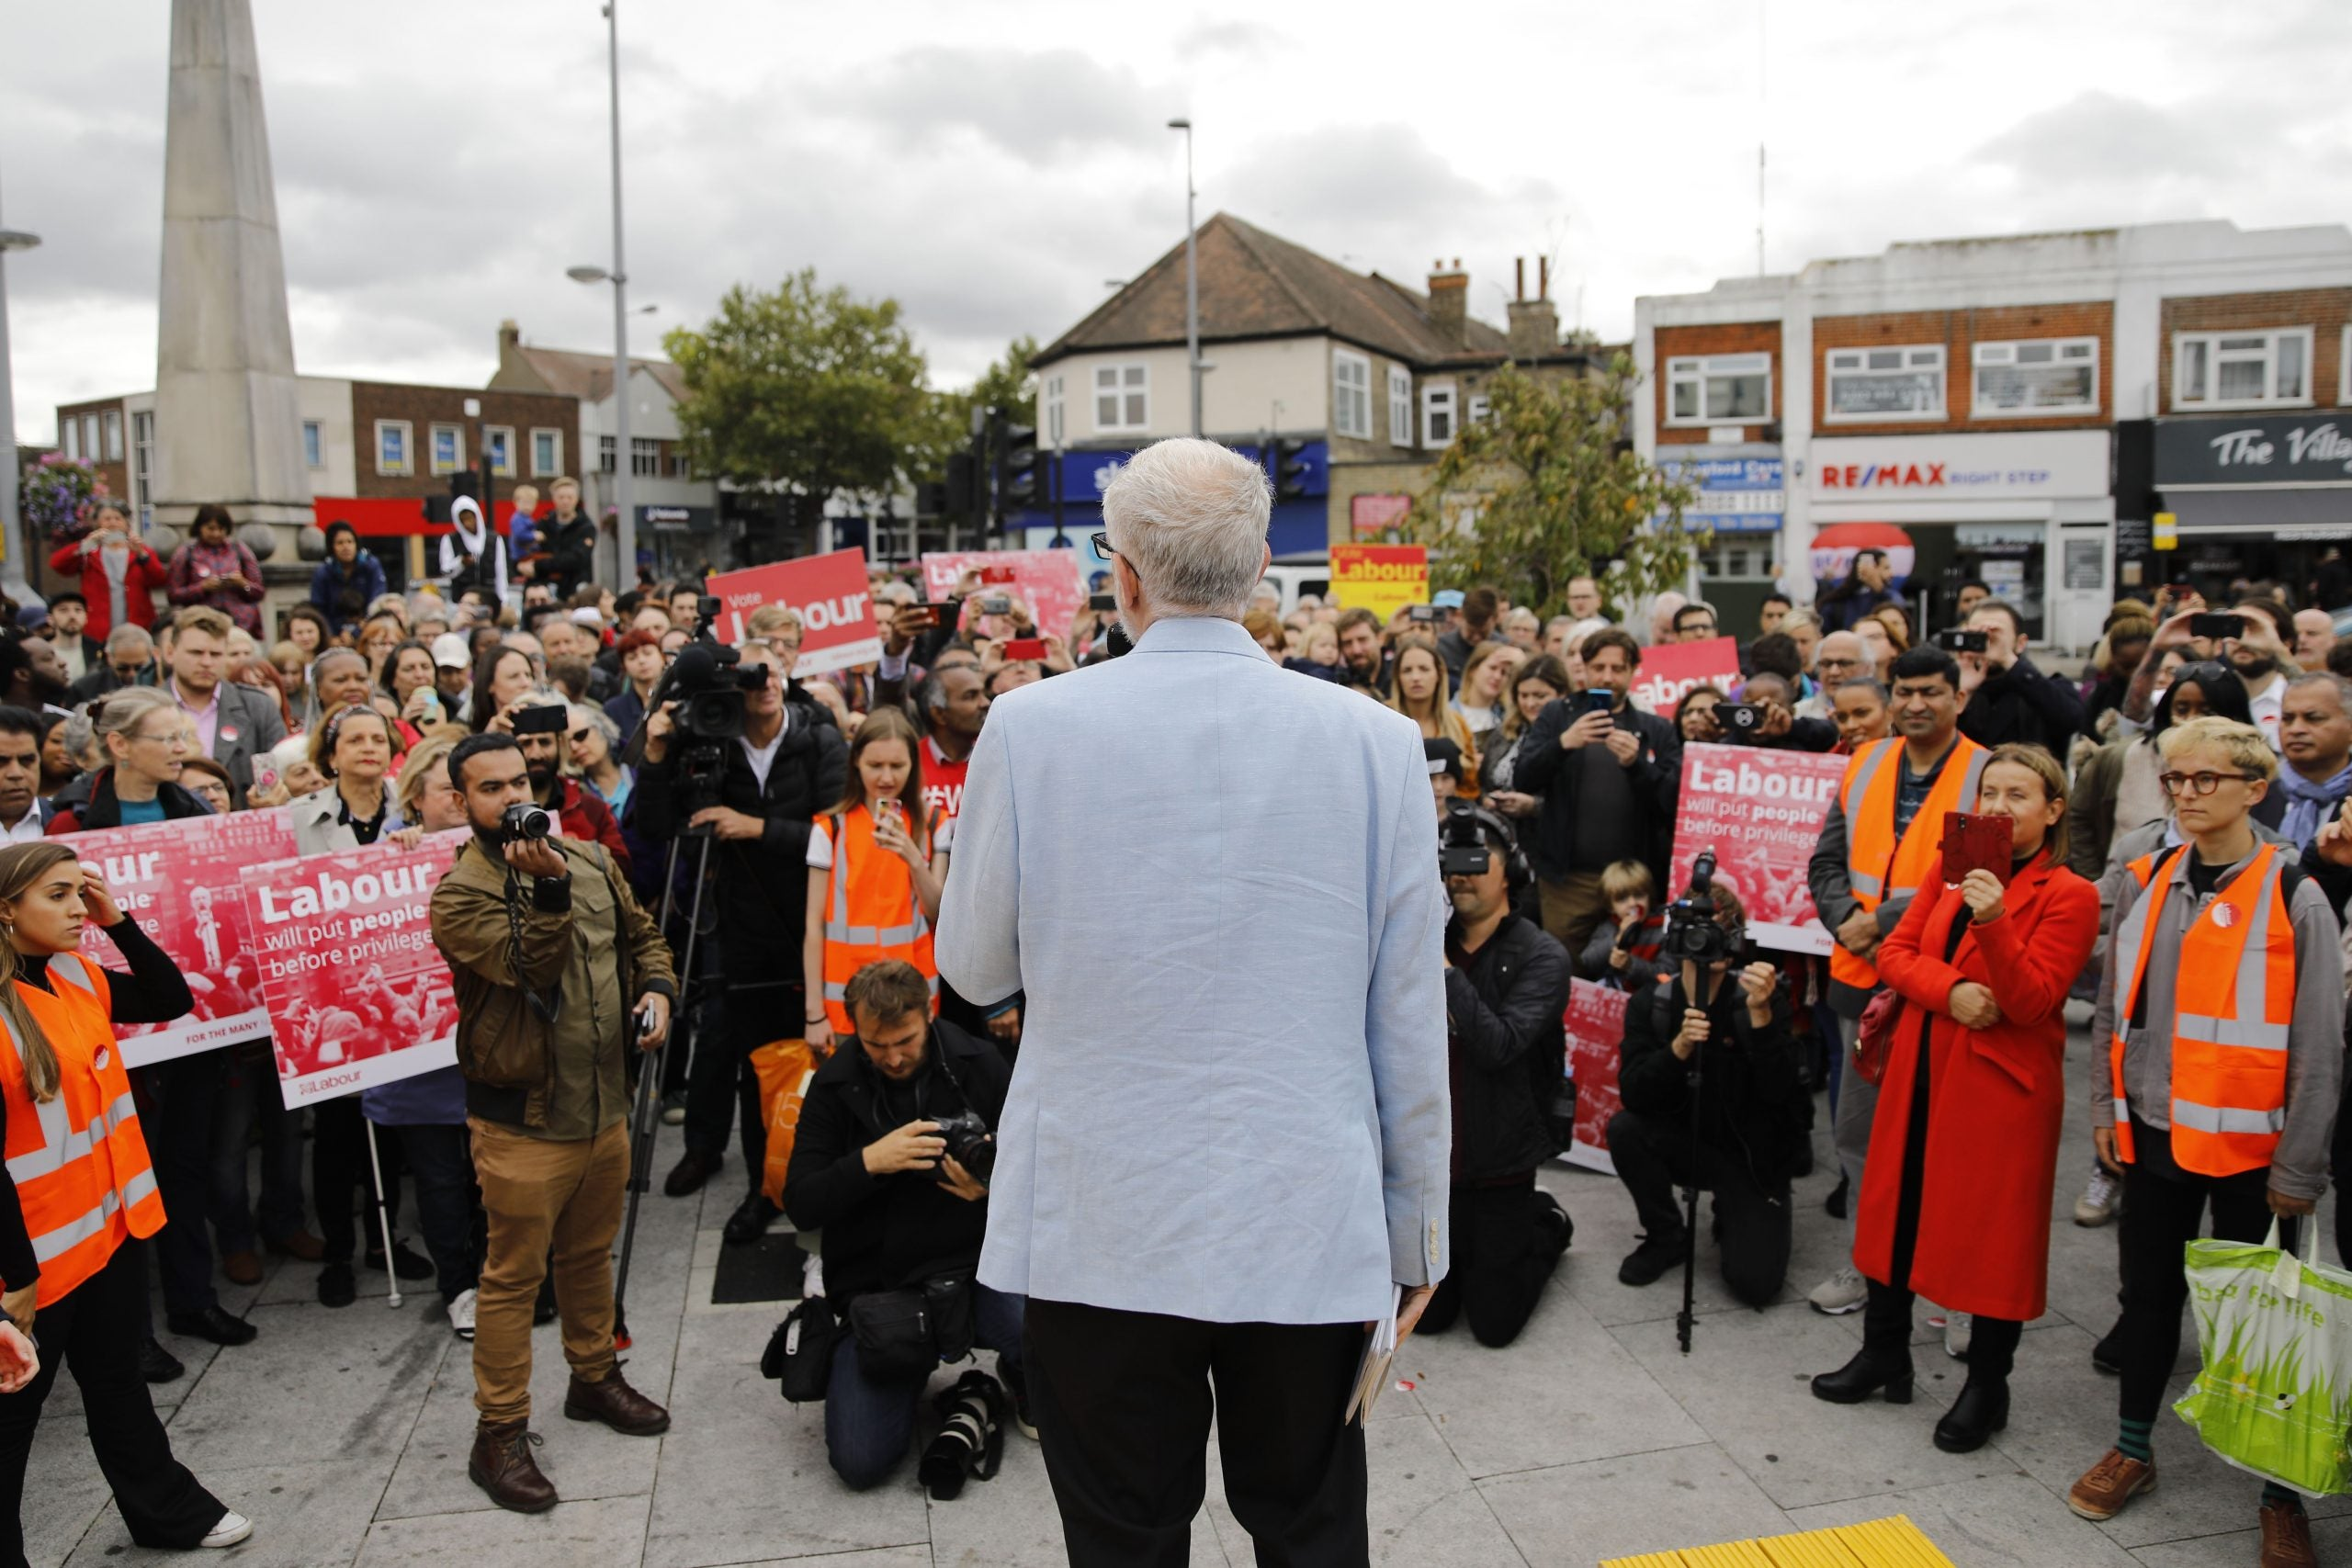 Many Labour MPs will be happy for Corbyn to lose if they can reclaim the party from the left